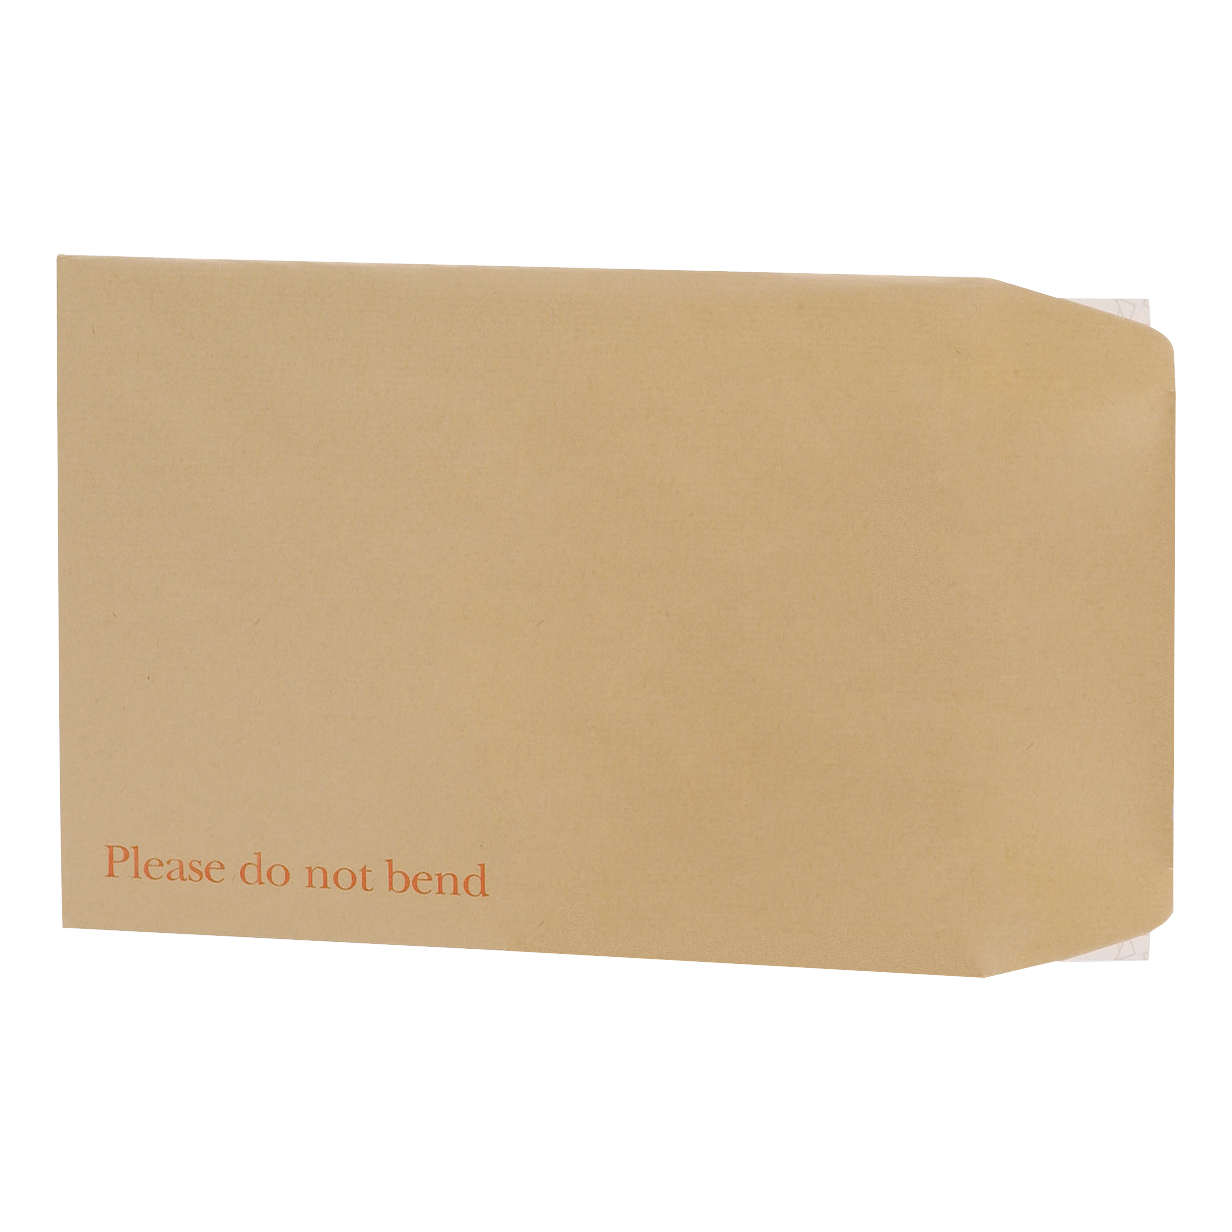 Board Backed Envelopes 5 Star Office Envelopes Recycled Board Backed Hot Melt Peel & Seal C4 324x229mm 120gsm Manilla Pack 125